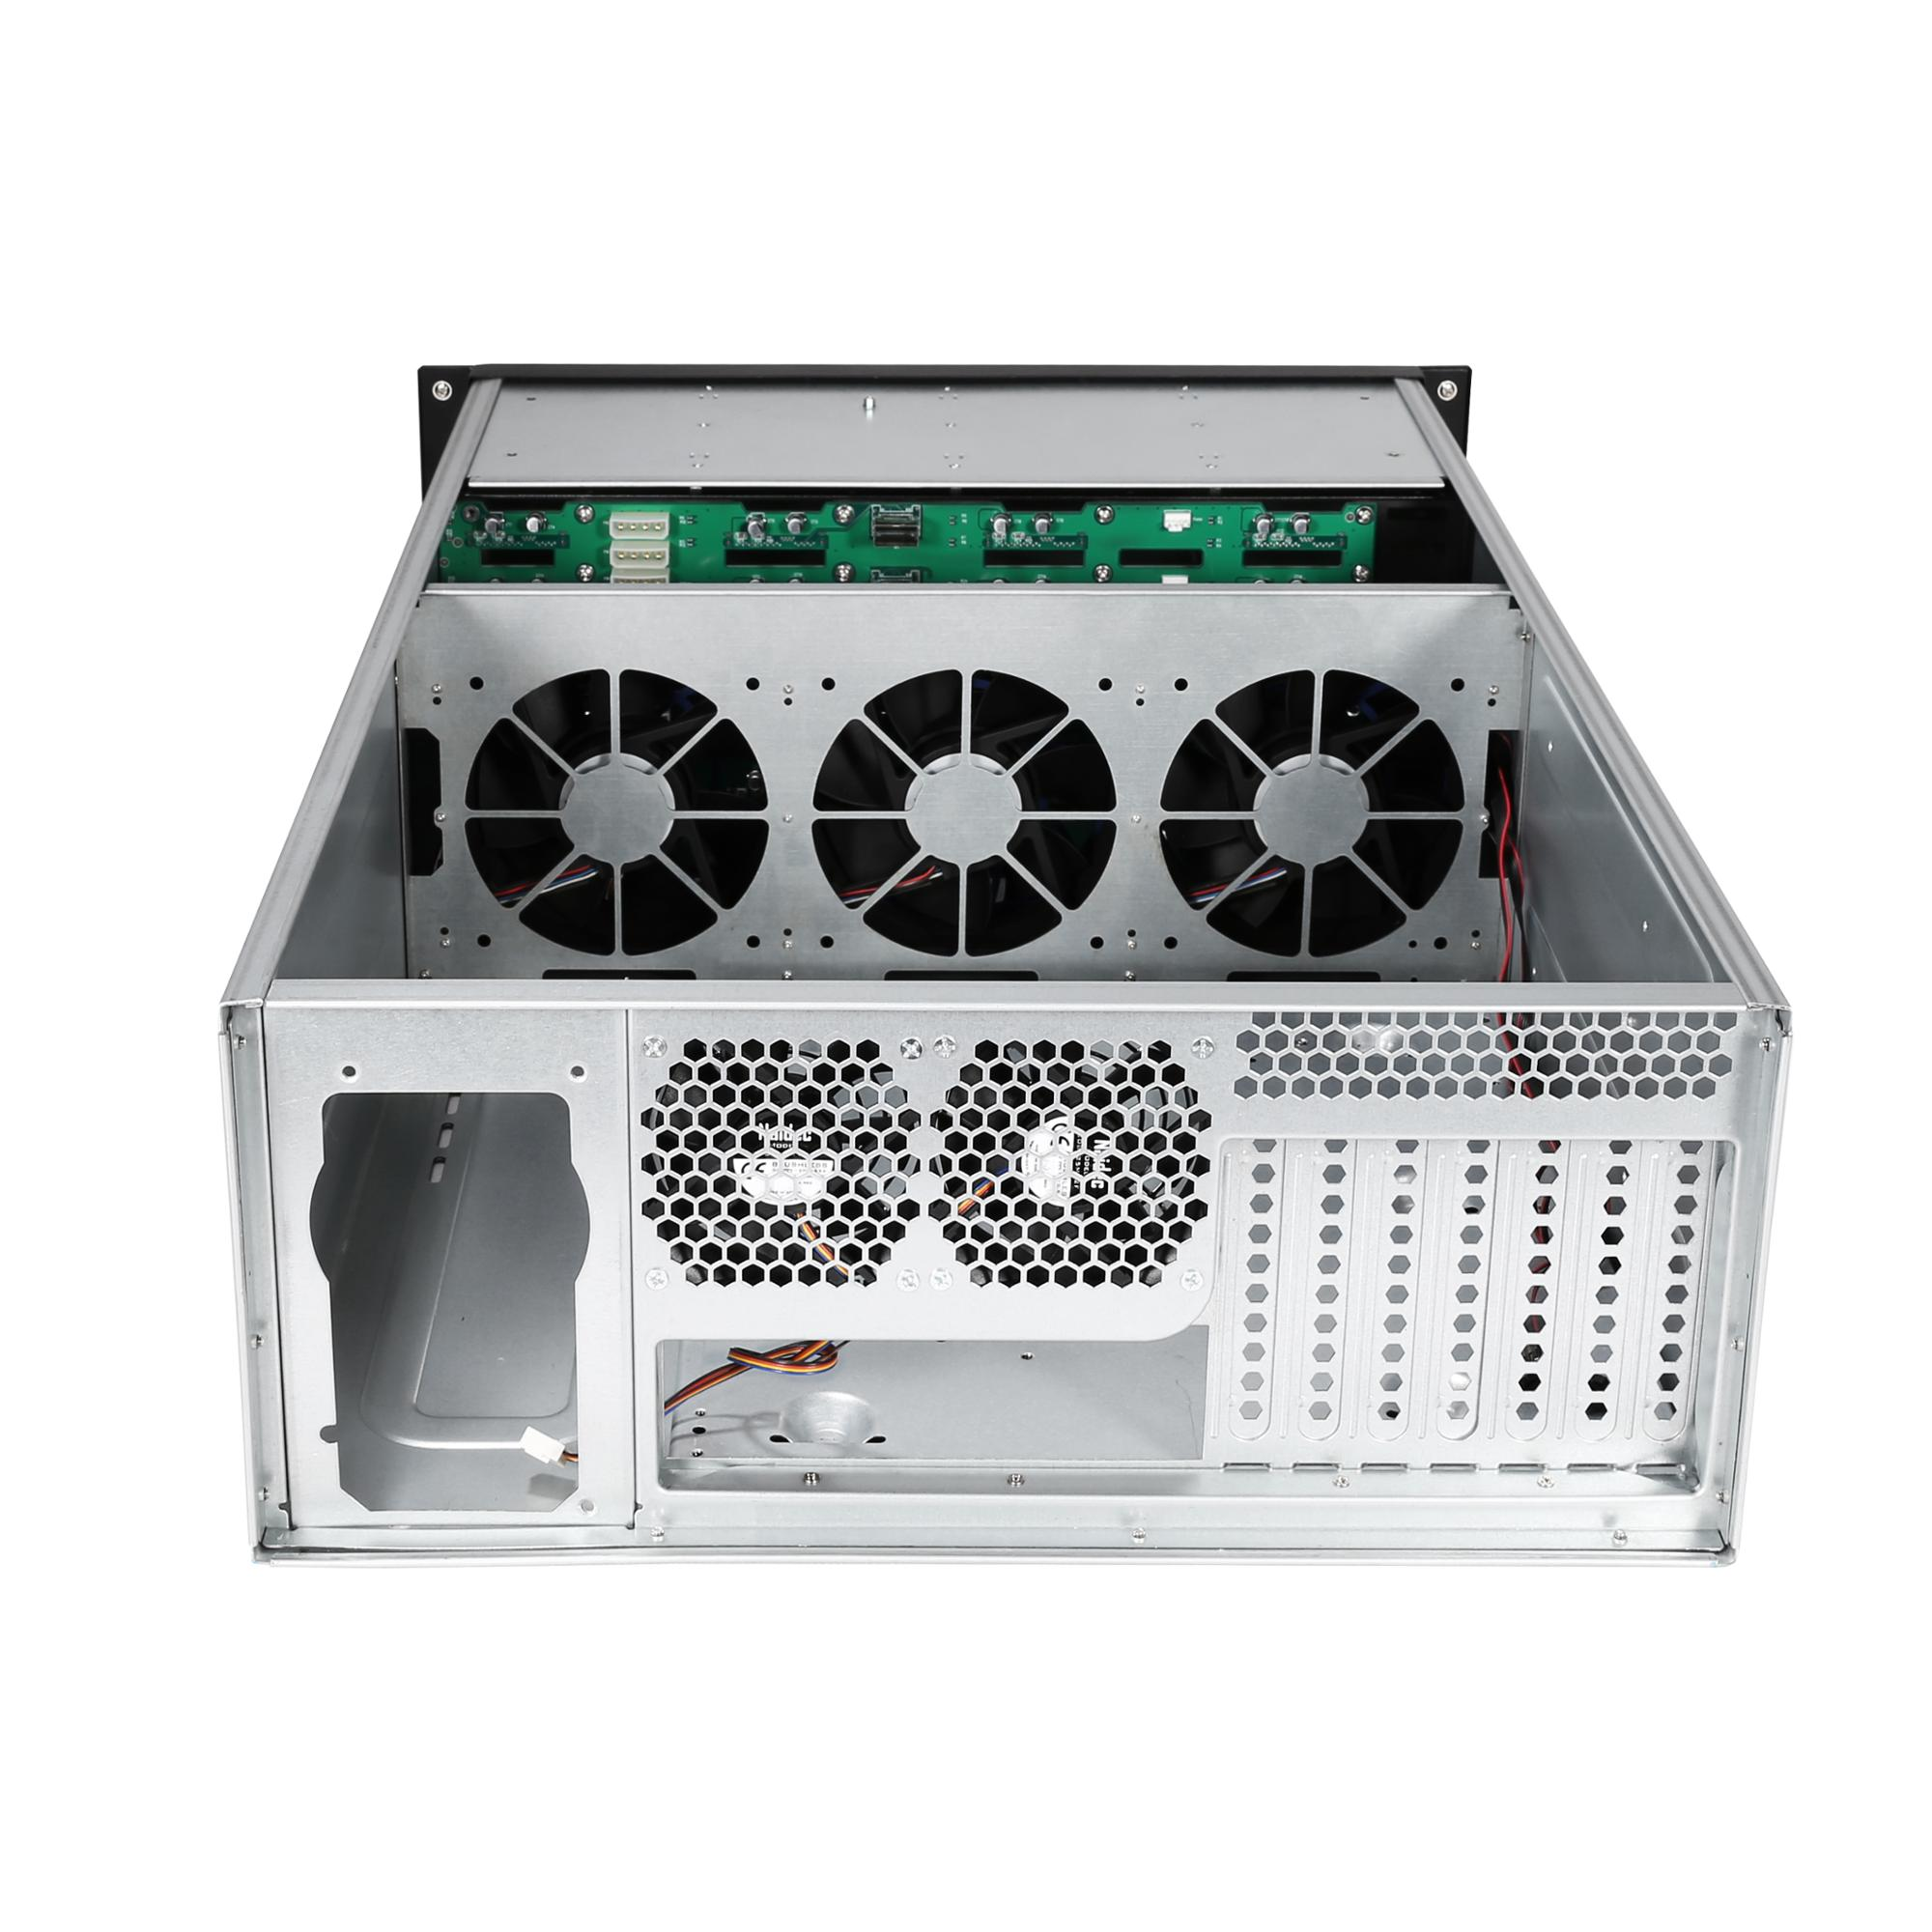 4u chassis 24 Bays IPFS Storage Server Case with 3*12038 Fans rackmount chassis